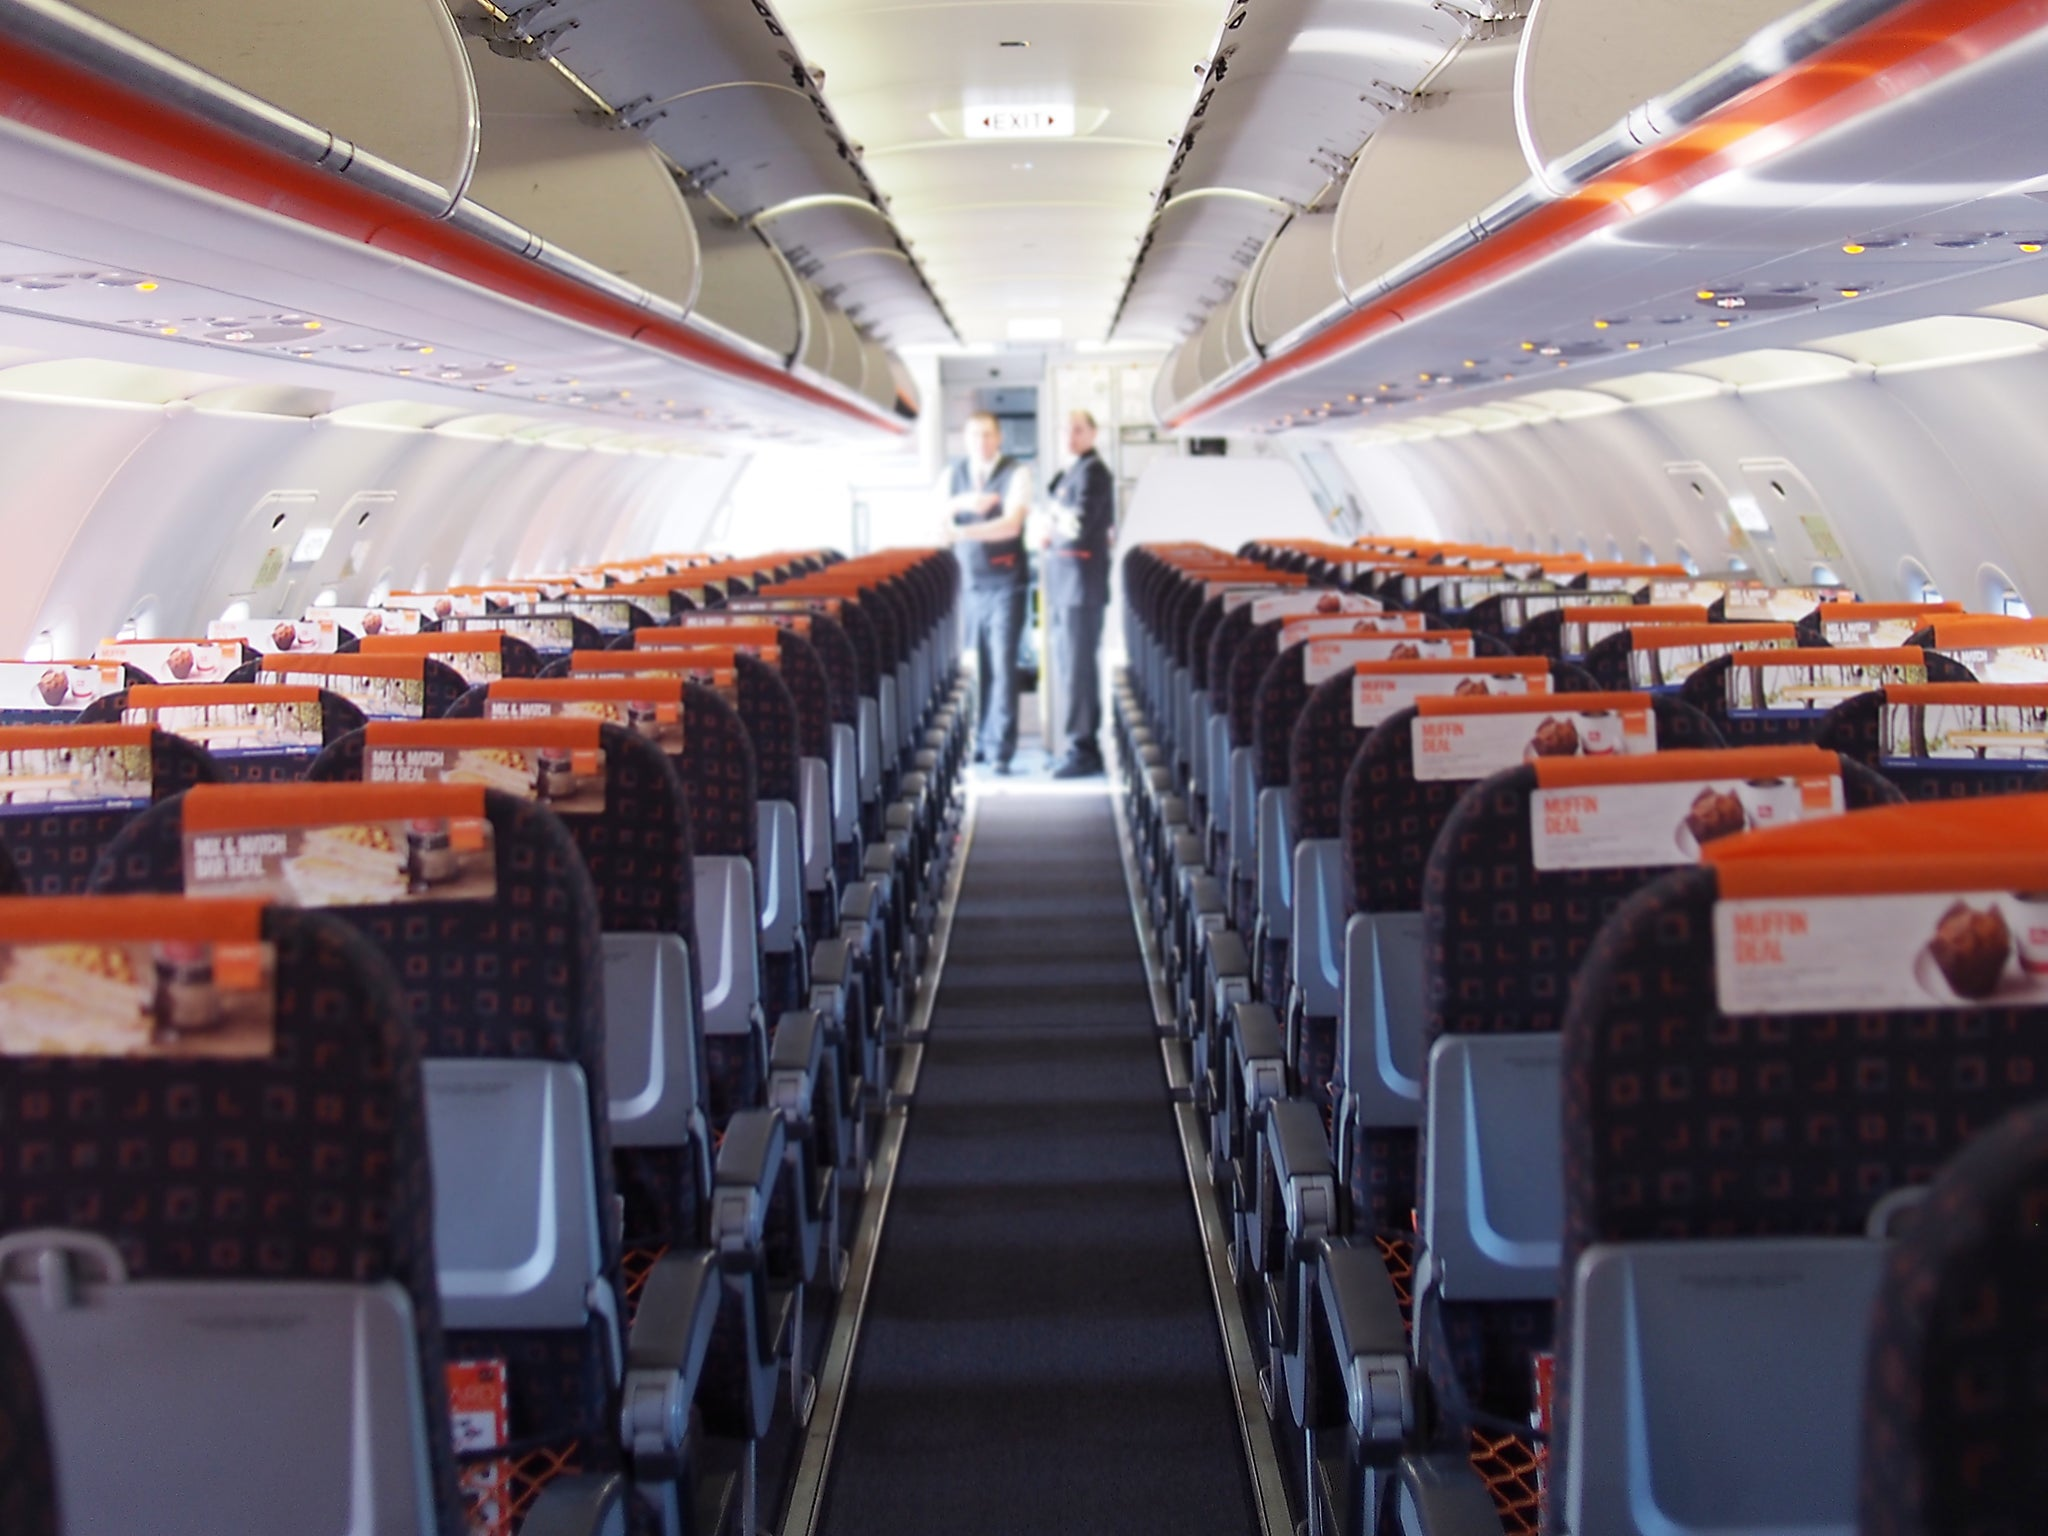 EasyJet comes under fire for removing unaccompanied child from overbooked flight